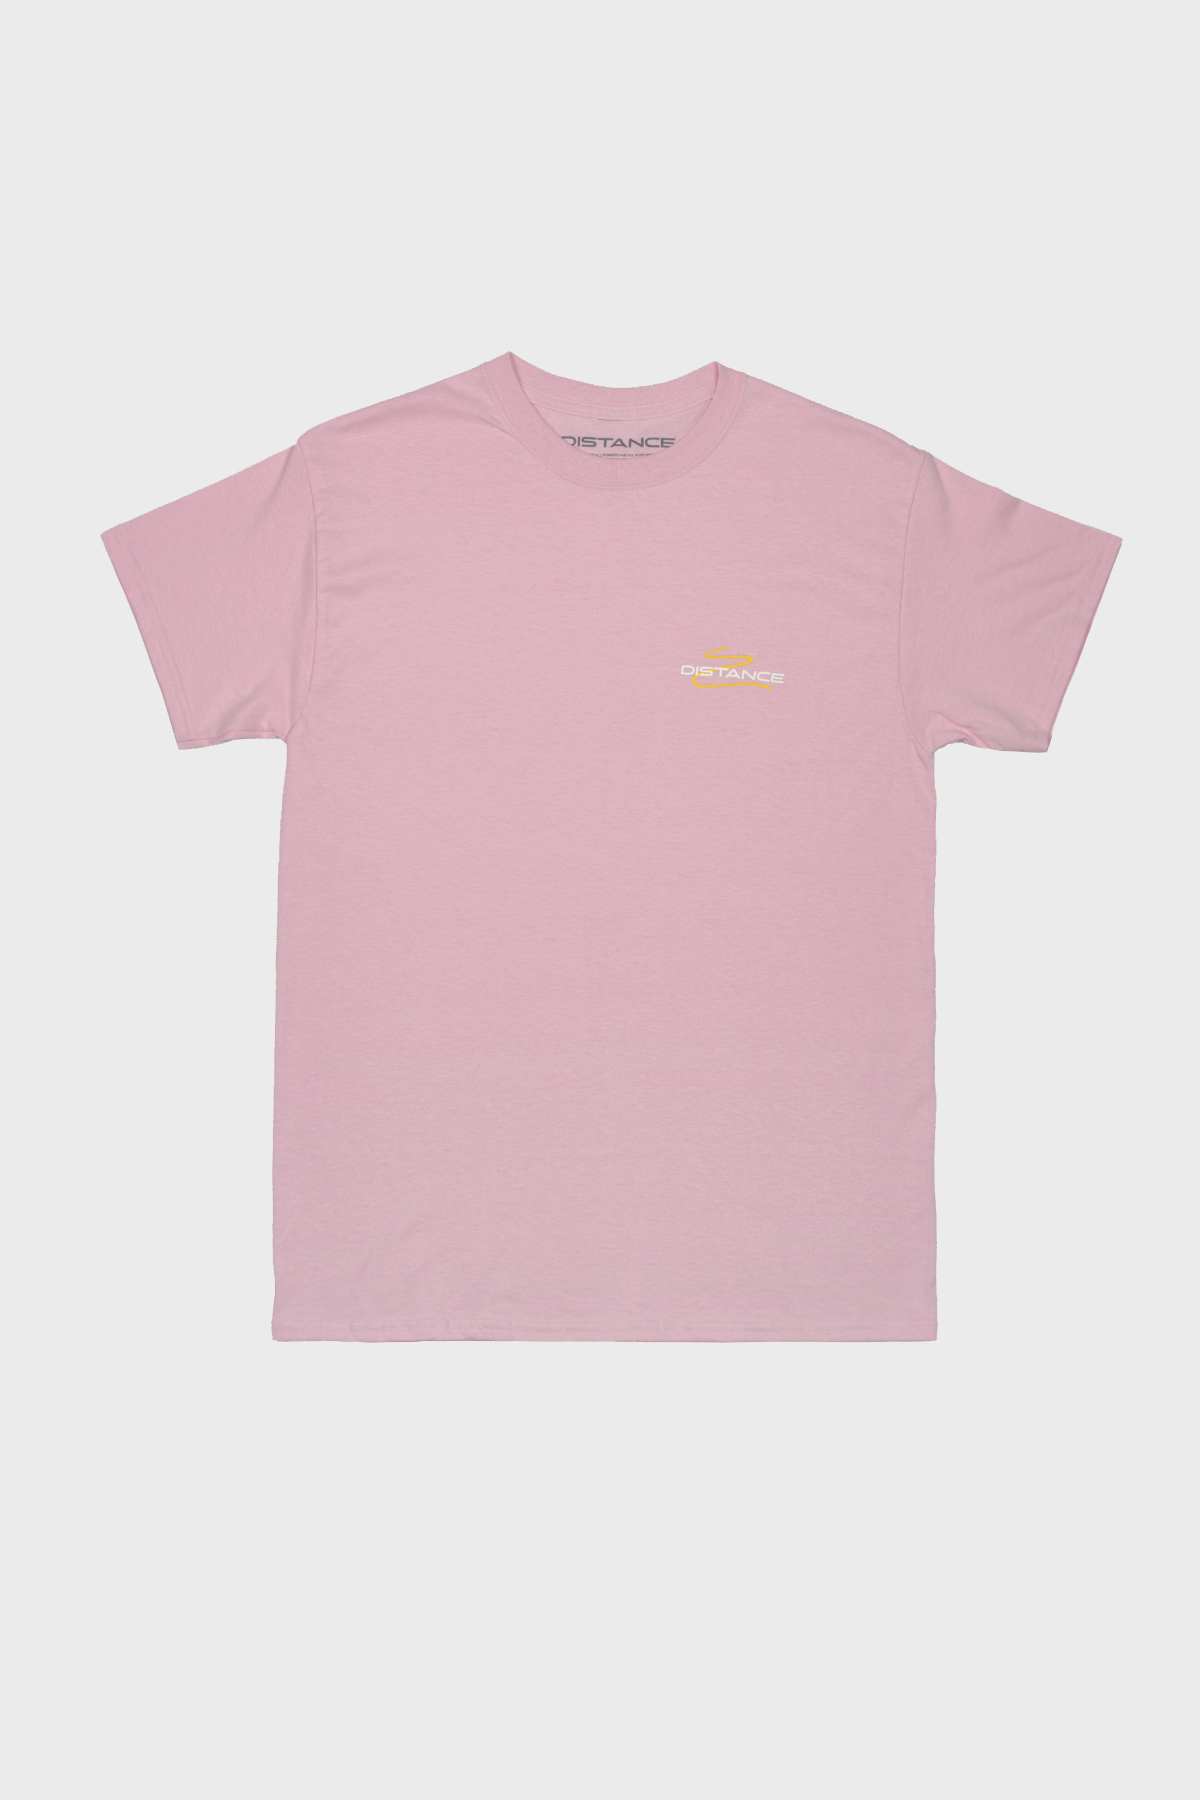 Distance - Squiggle Tee - Pink Yellow